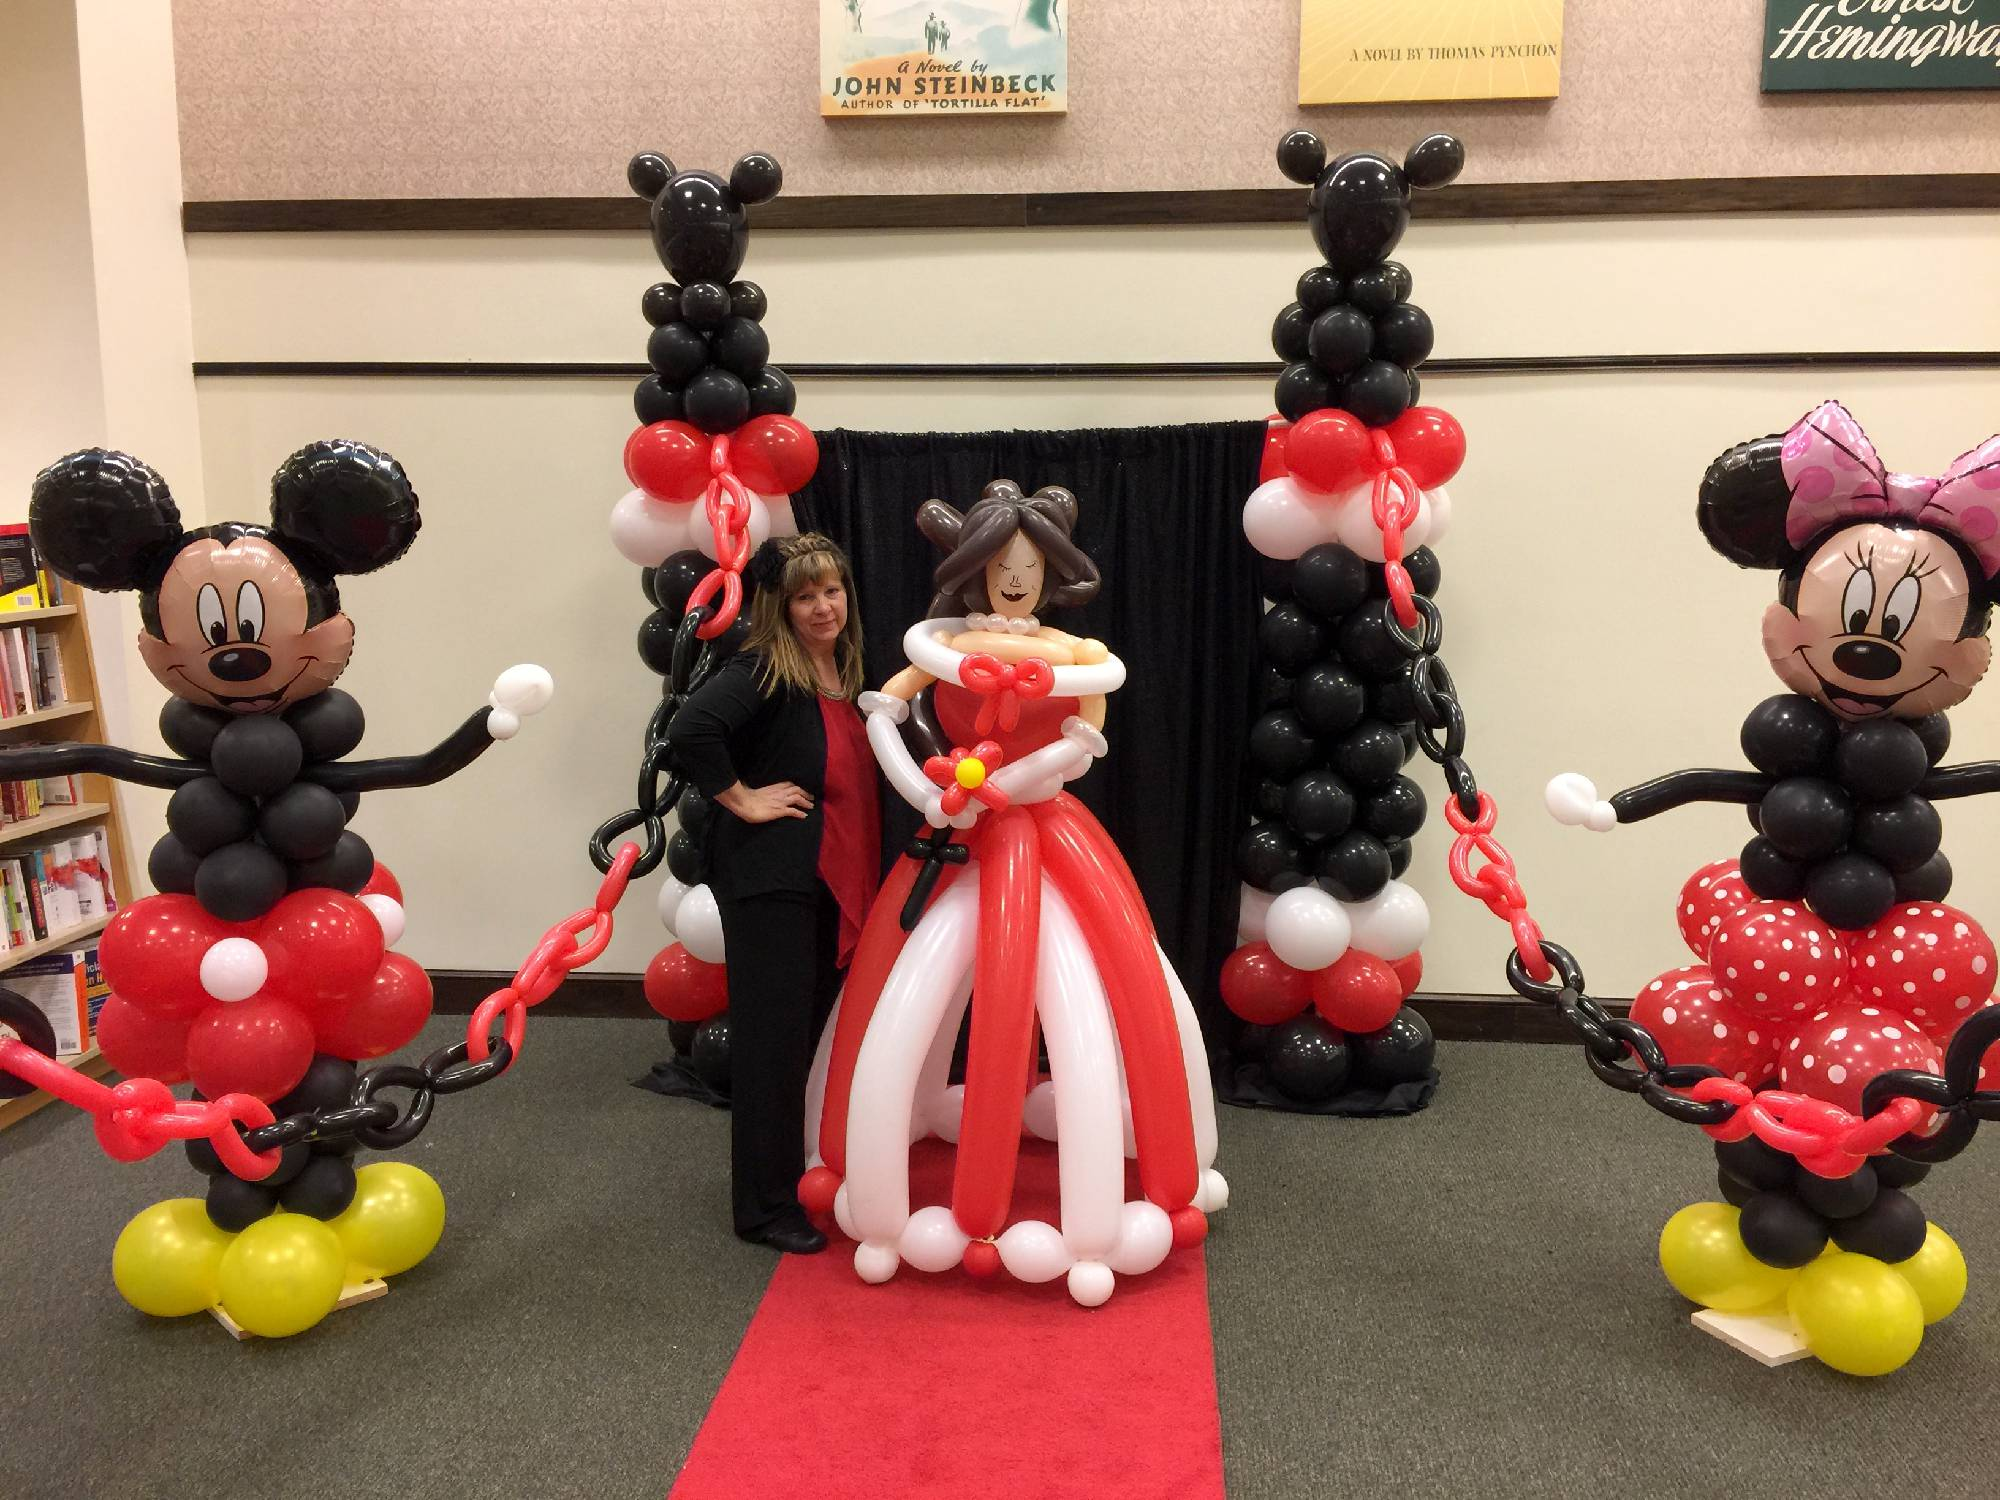 Famous mouse and princess balloon decorations for book store story time